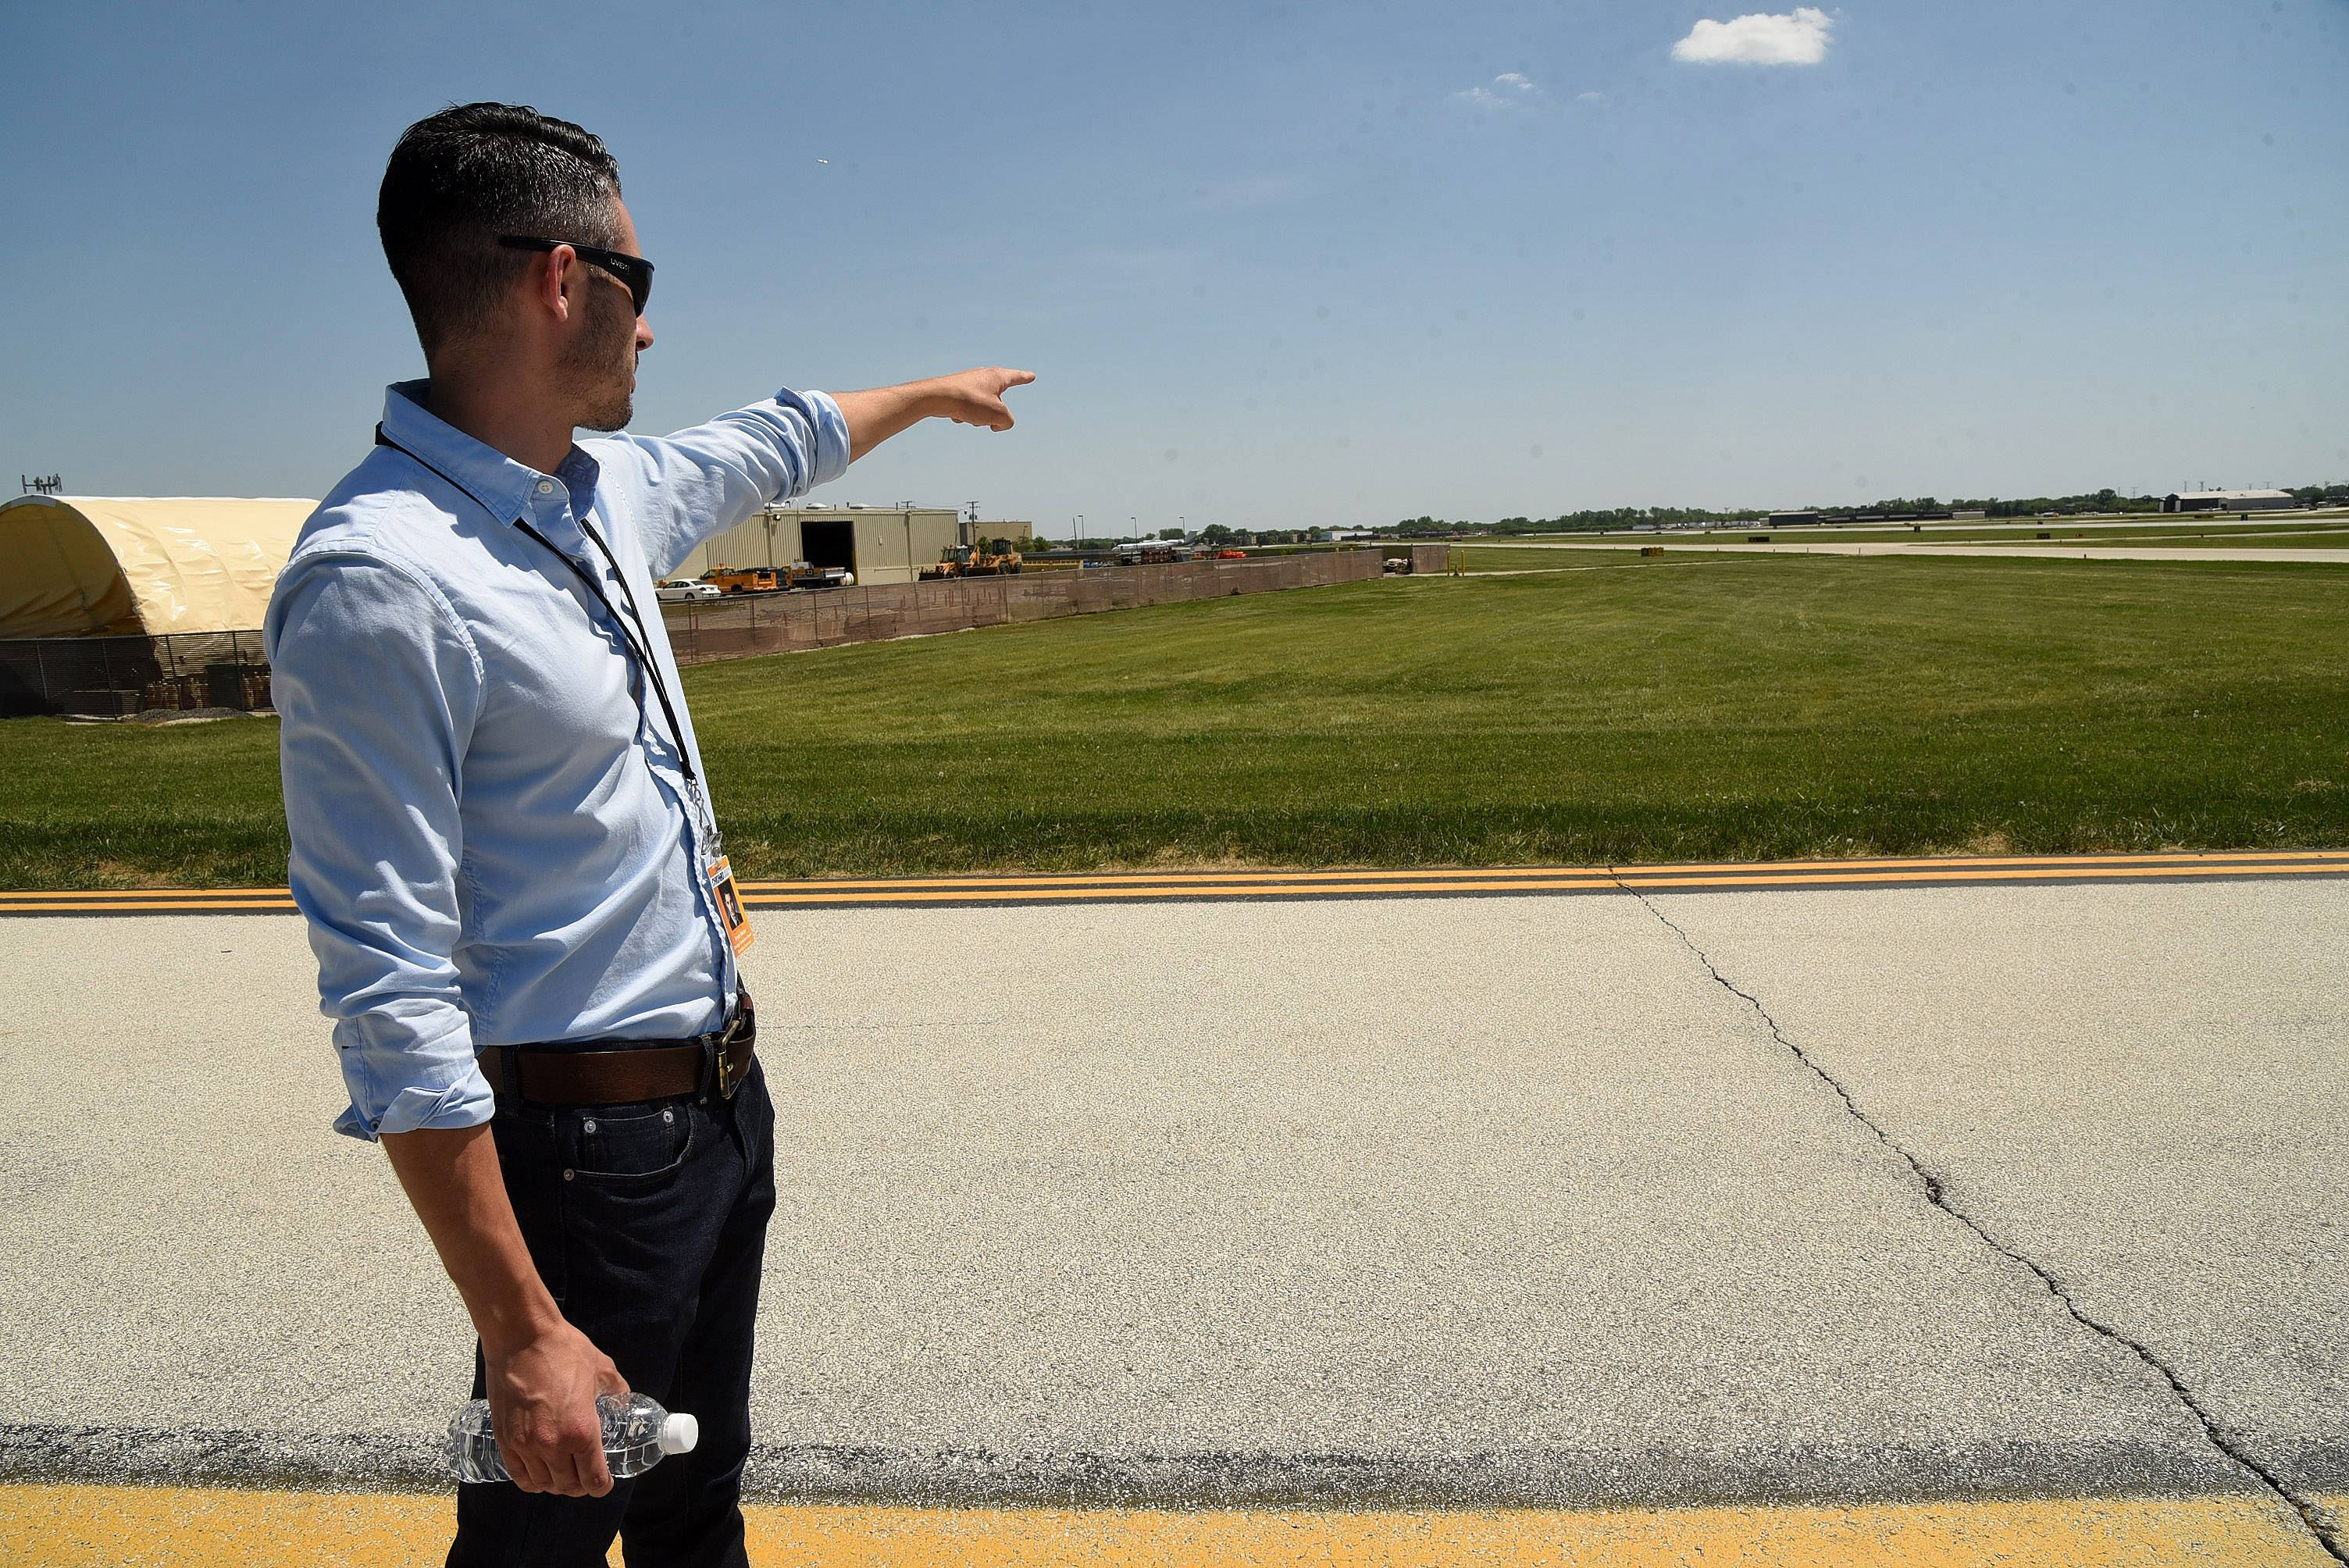 Bryce Walter, airport operations coordinator, points to where a drone was found near a Chicago Executive Airport runway.